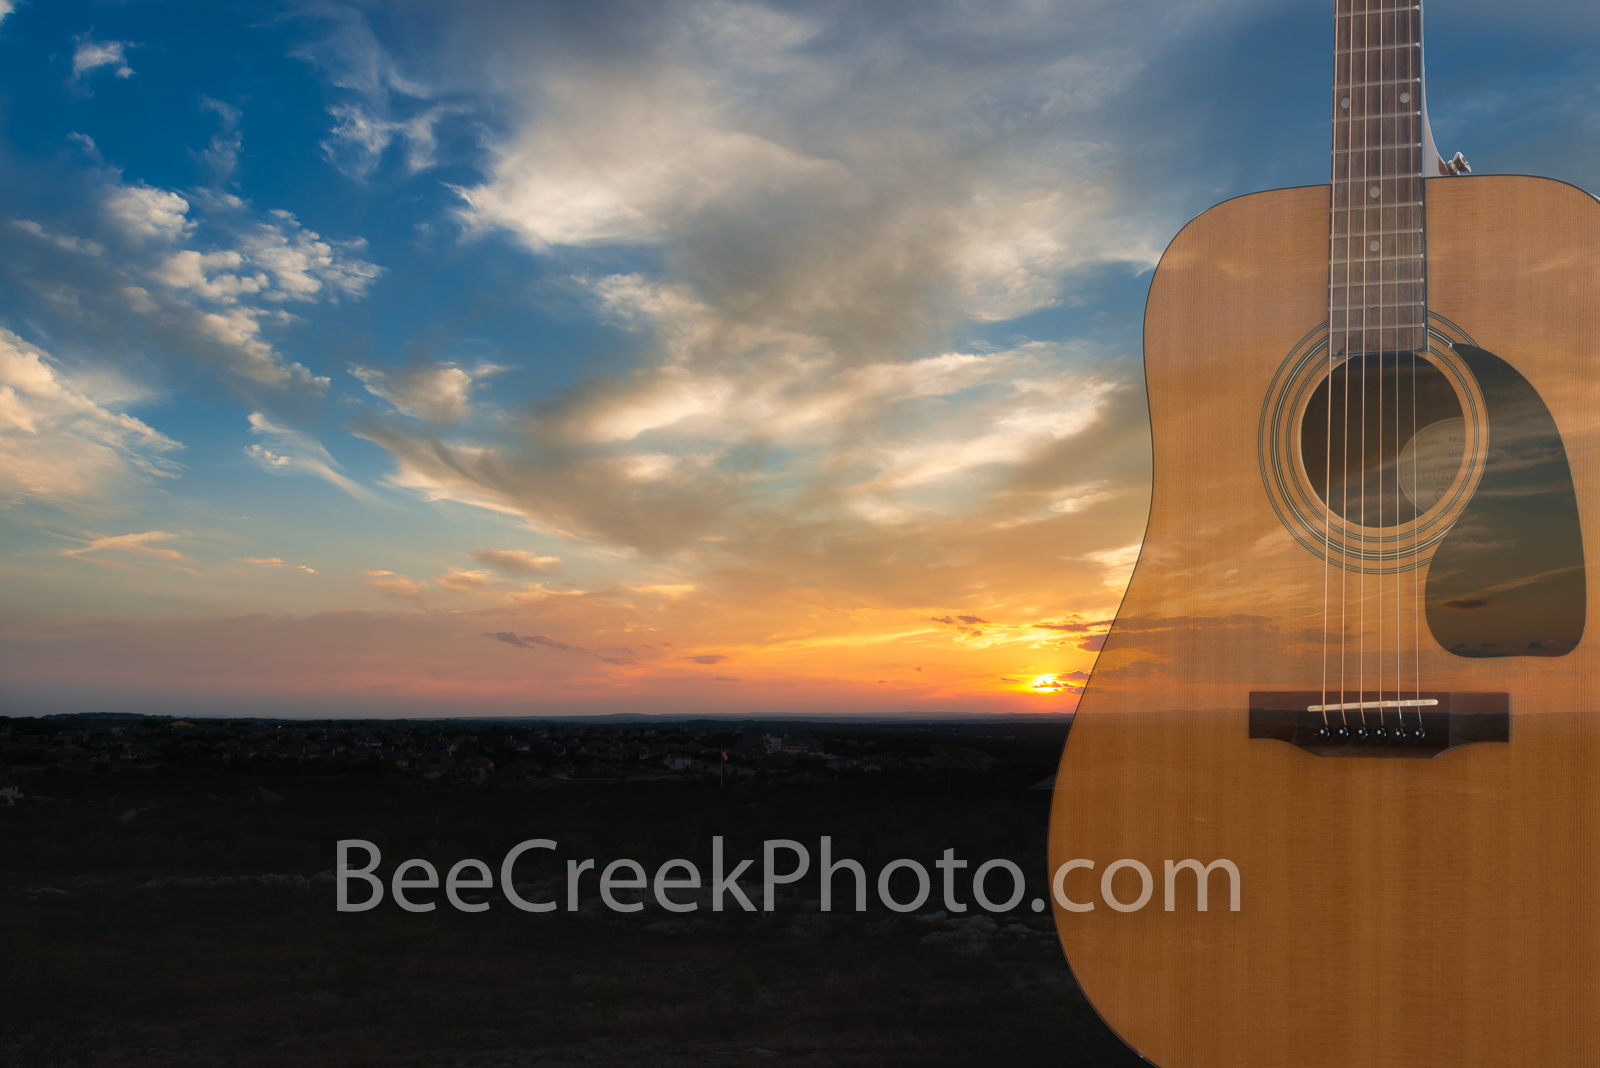 Moody Sunset Tunes - Nothing say romance like a beautiful sunset with some soothing music. This composite of a guitar with the...